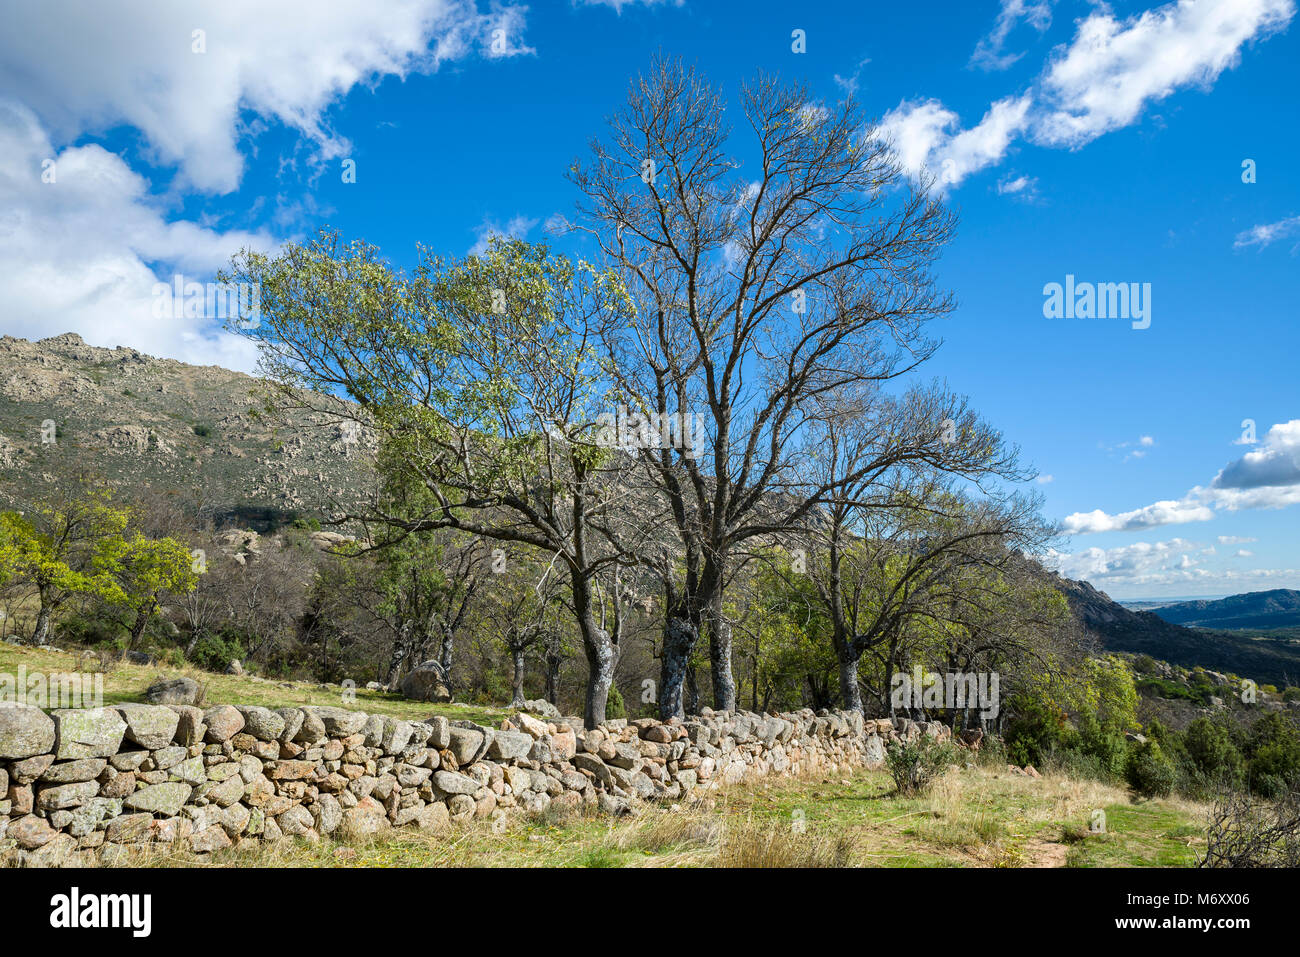 Bare Narrow-leafed ash tree, Fraxinus angustifolia, next to a stone wall in Guadarrama Mountains, El Boalo, Madrid, Stock Photo